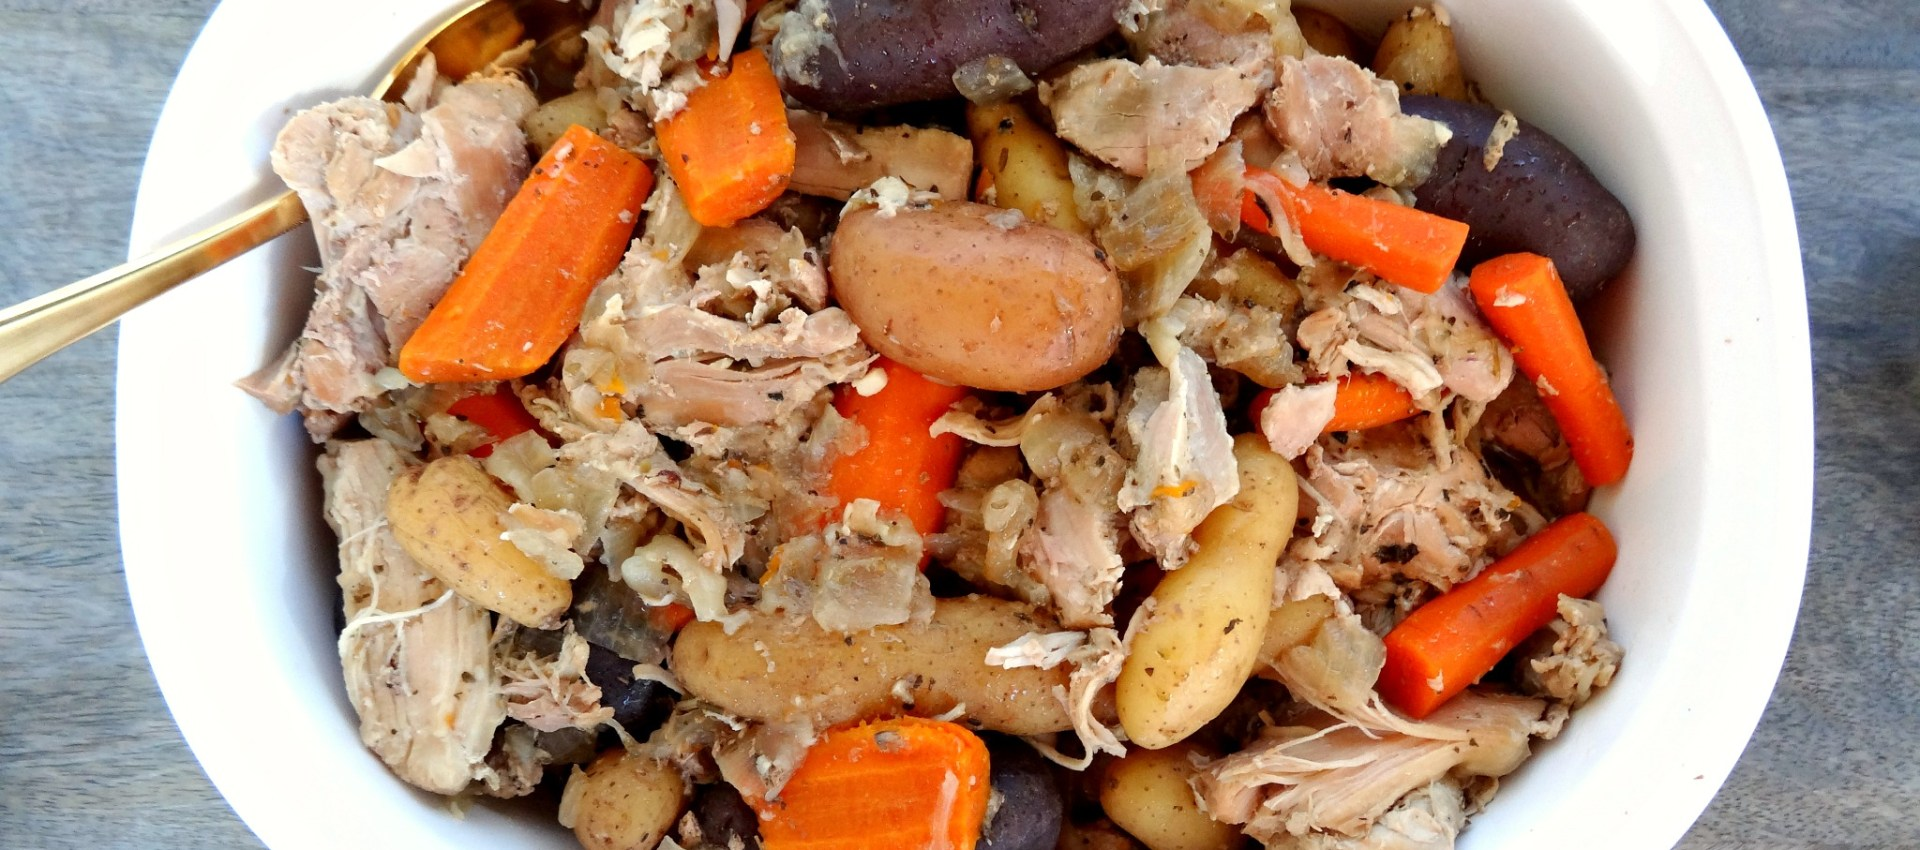 Slow Cooker Gluten-free Chicken Thighs Stew